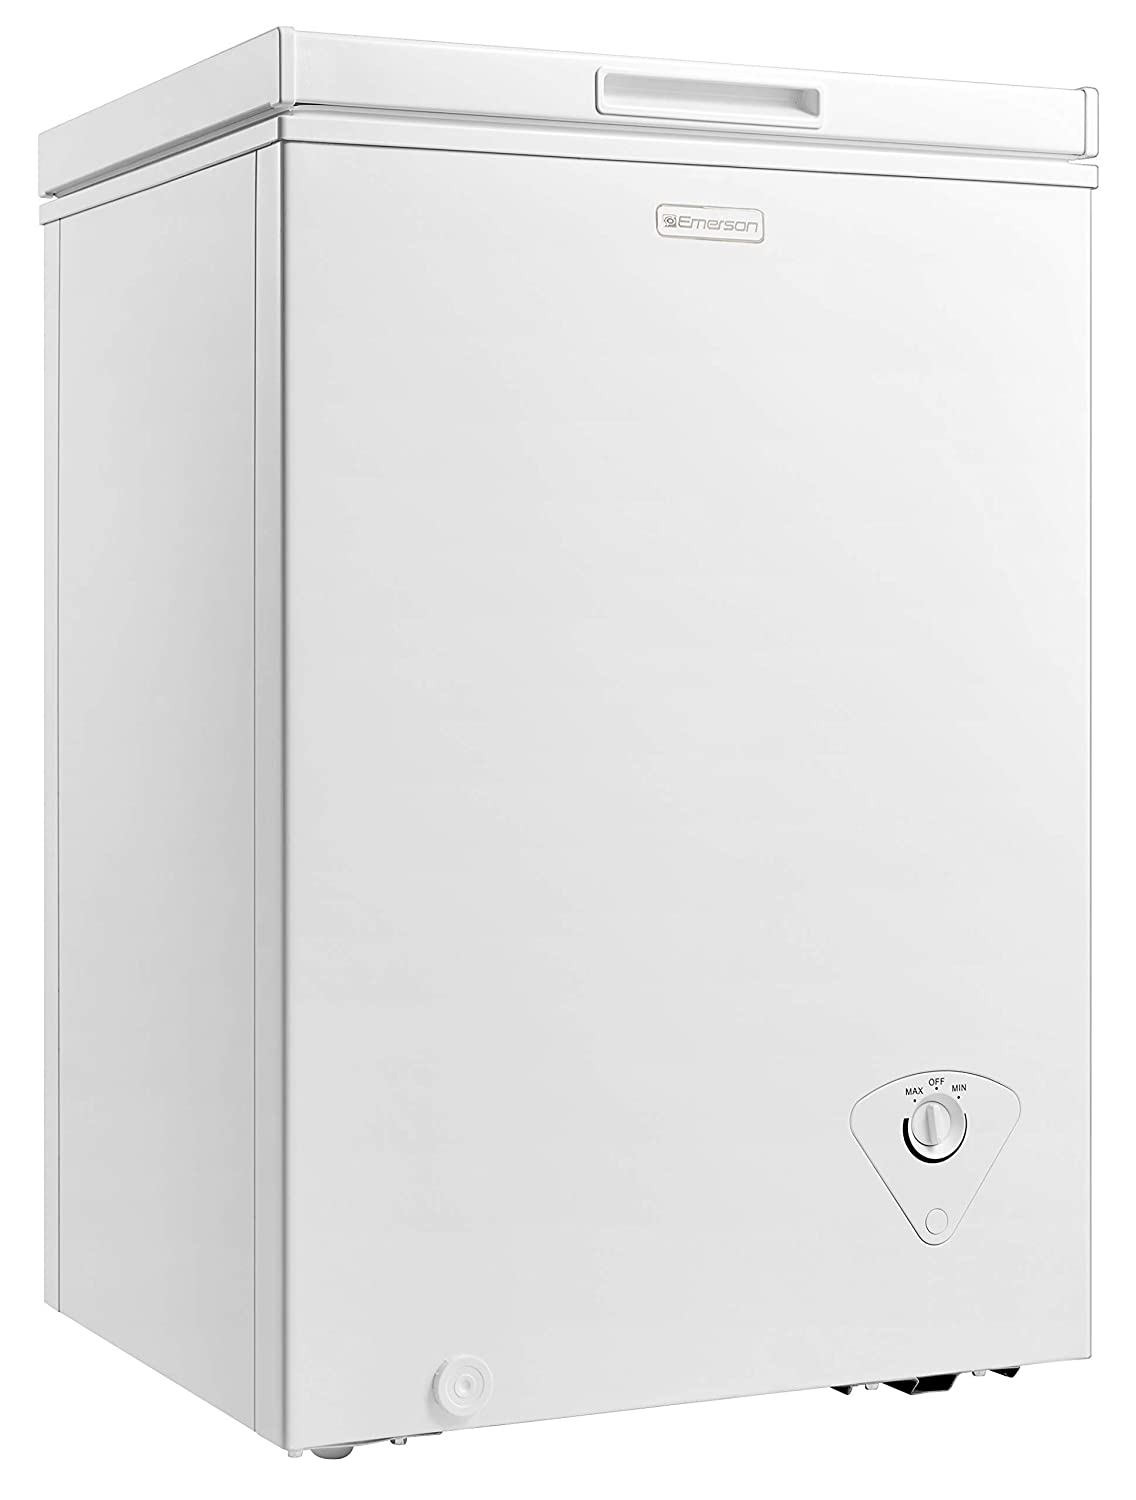 Emerson CF350 3.5-Cubic Foot Chest Freezer Midea